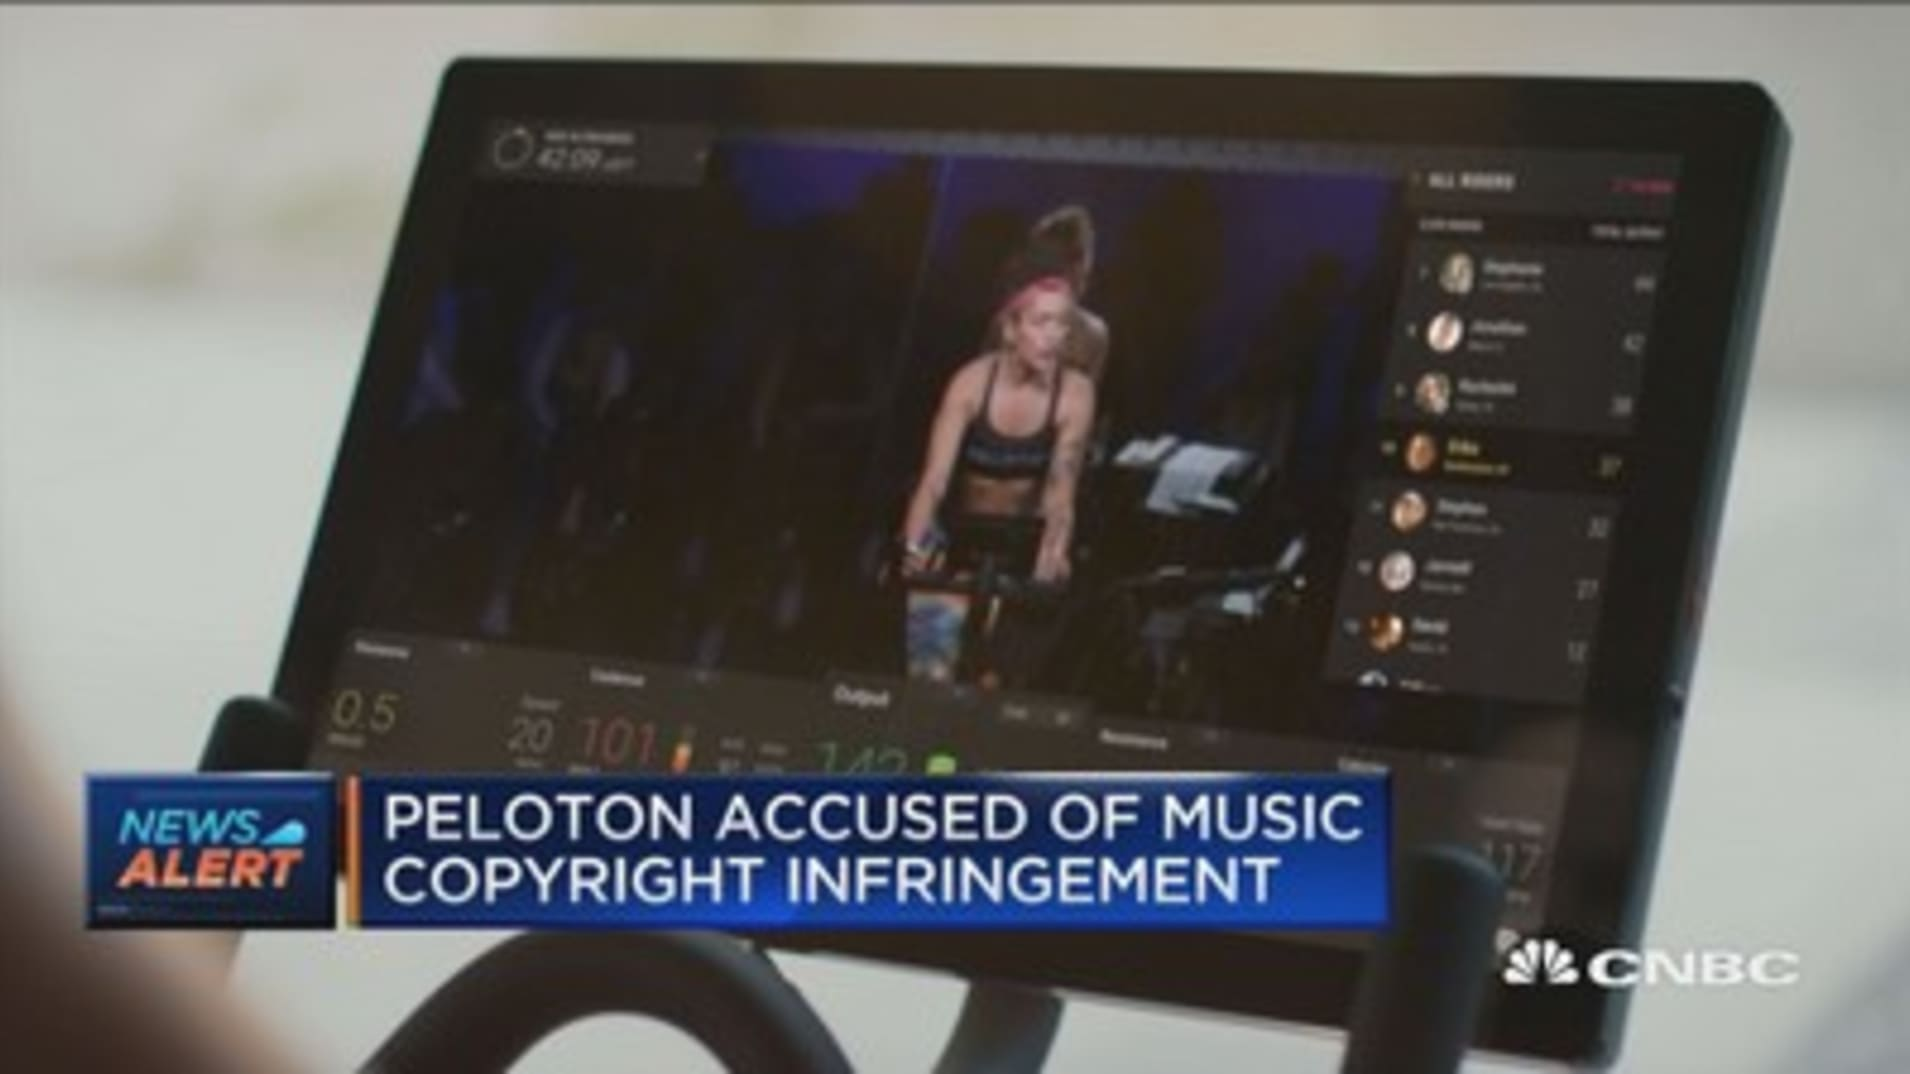 Music publishers sue Peloton for $150 million, accusing the company of copyright infringement